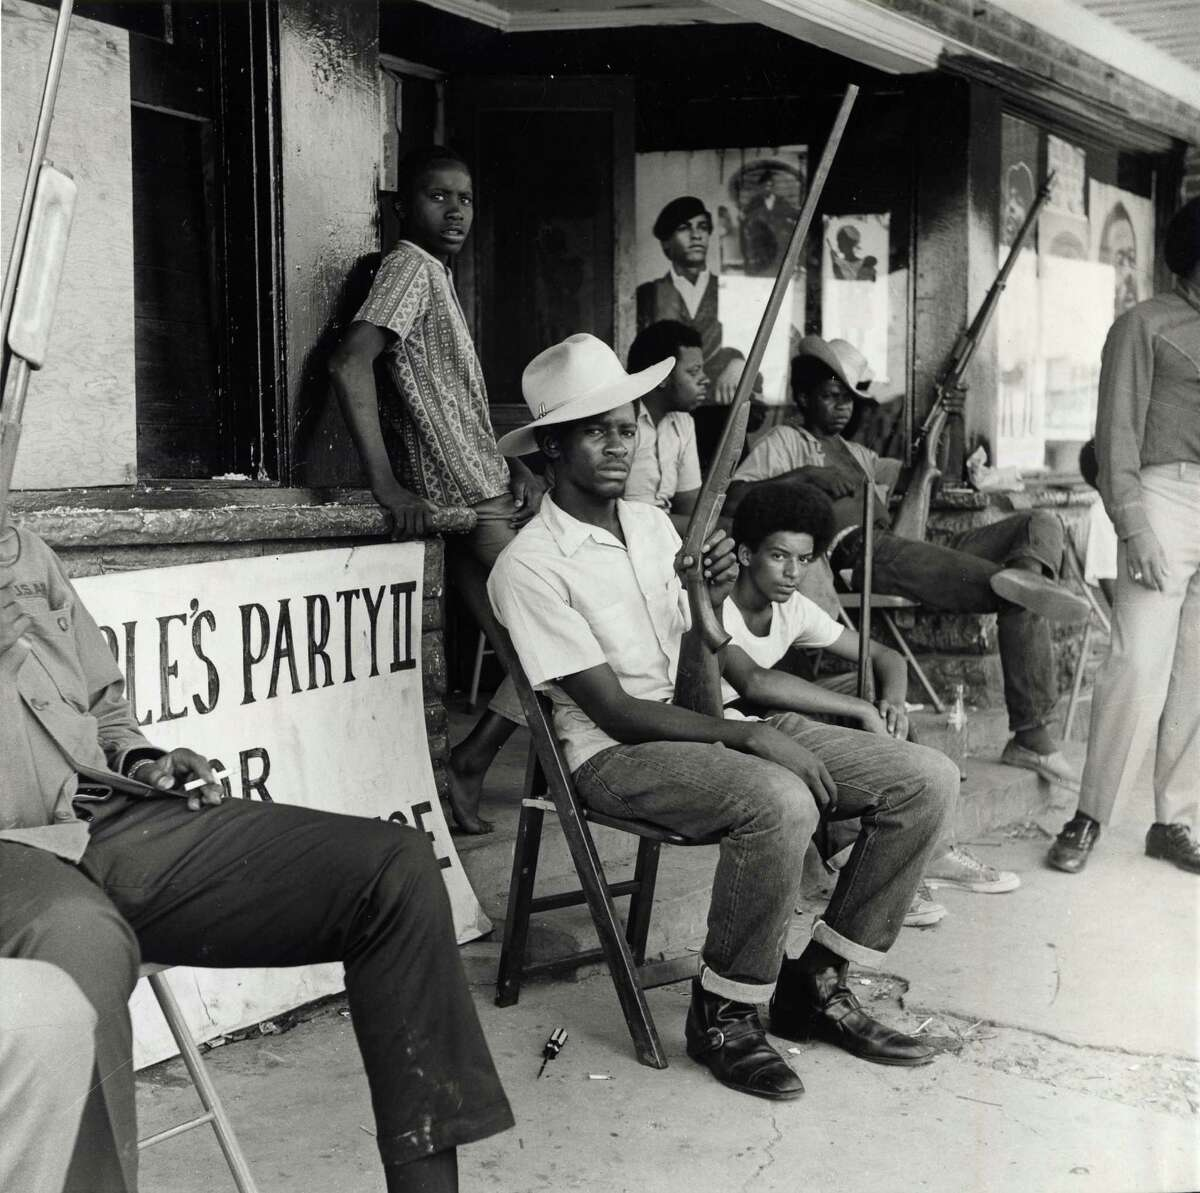 The scene outside the People's Party II headquarters, 2828 Dowling St., in July 1970, before a police shootout resulted in the death of Carl Hampton, the group's founder. (For more photos, of both the Houston and national movement, scroll through the gallery.)